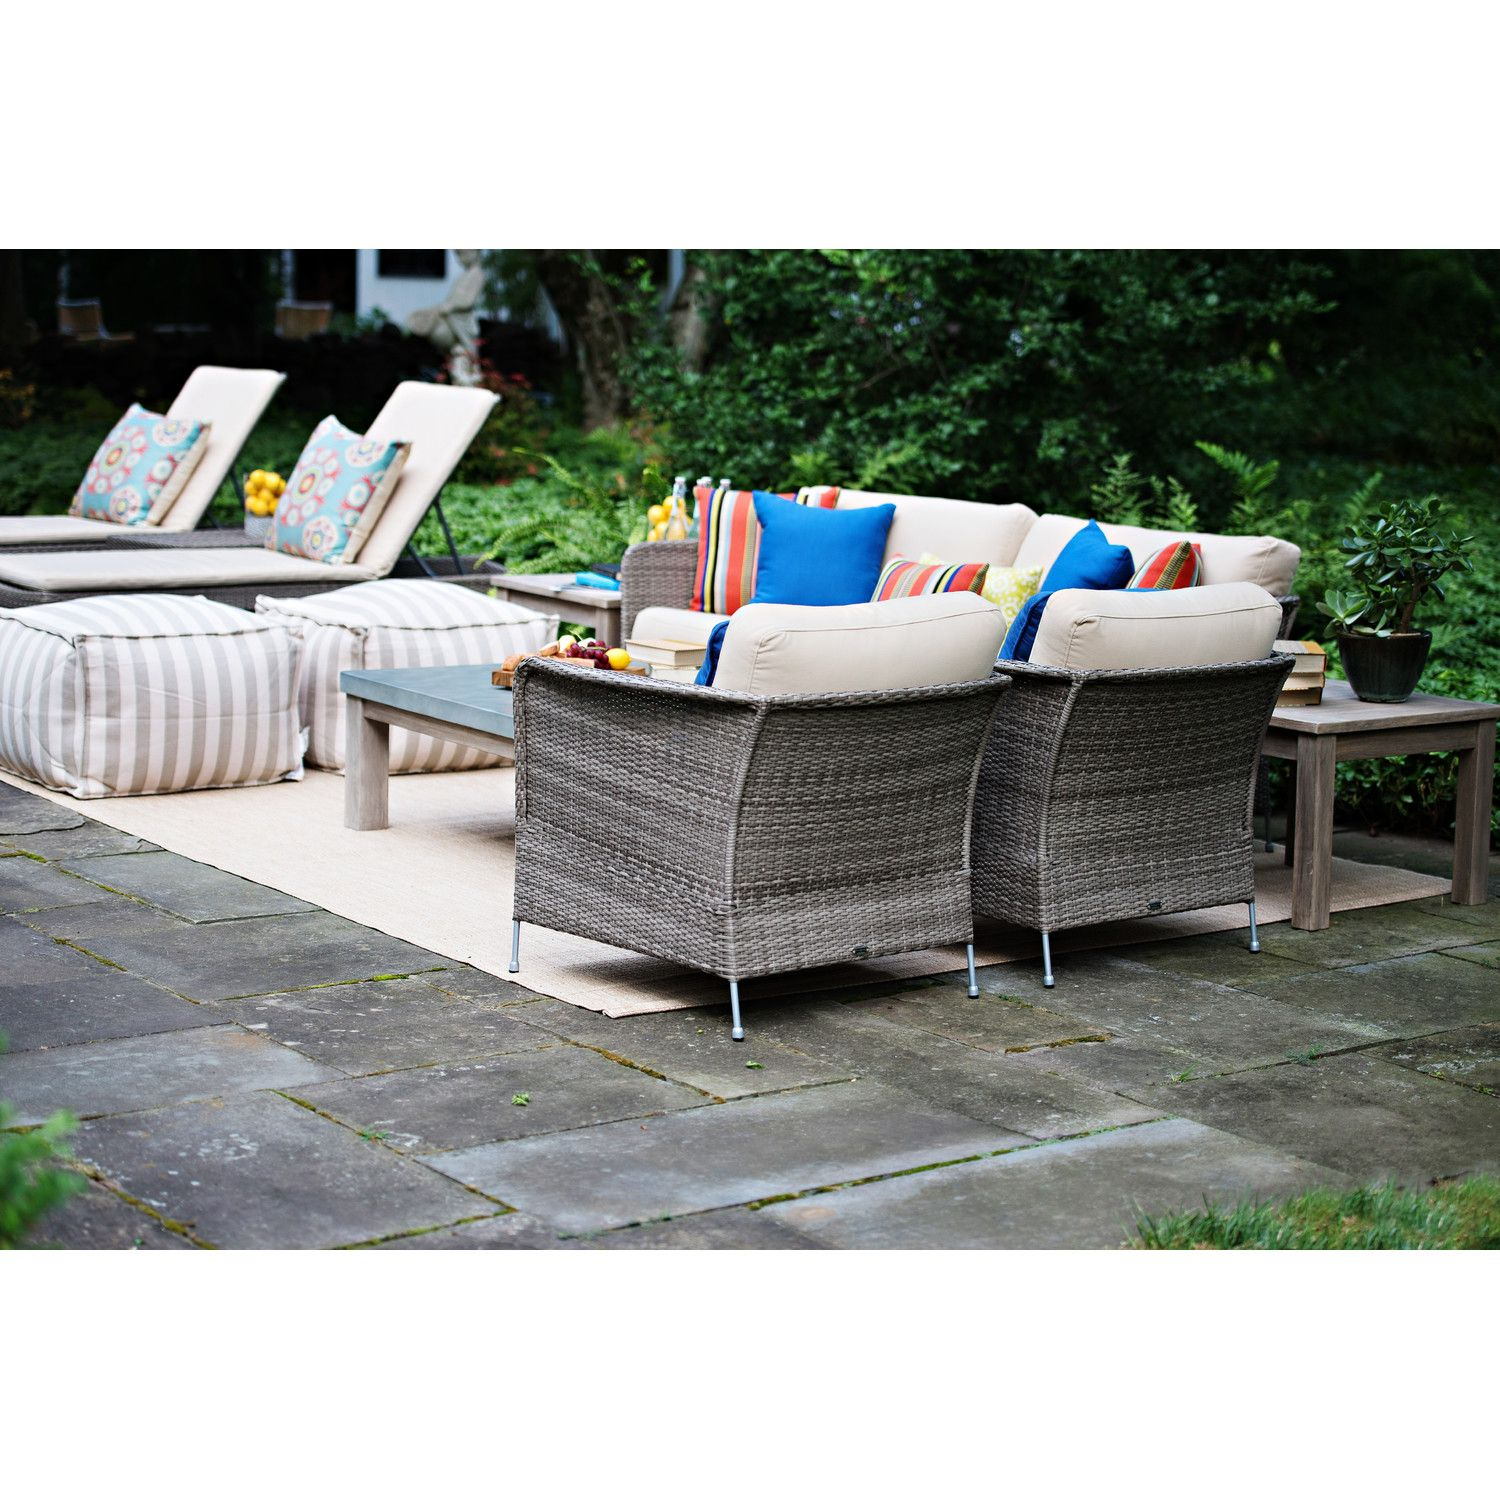 From Wayfair Outdoor Furniture Sets Club Chairs Outdoor Sofa